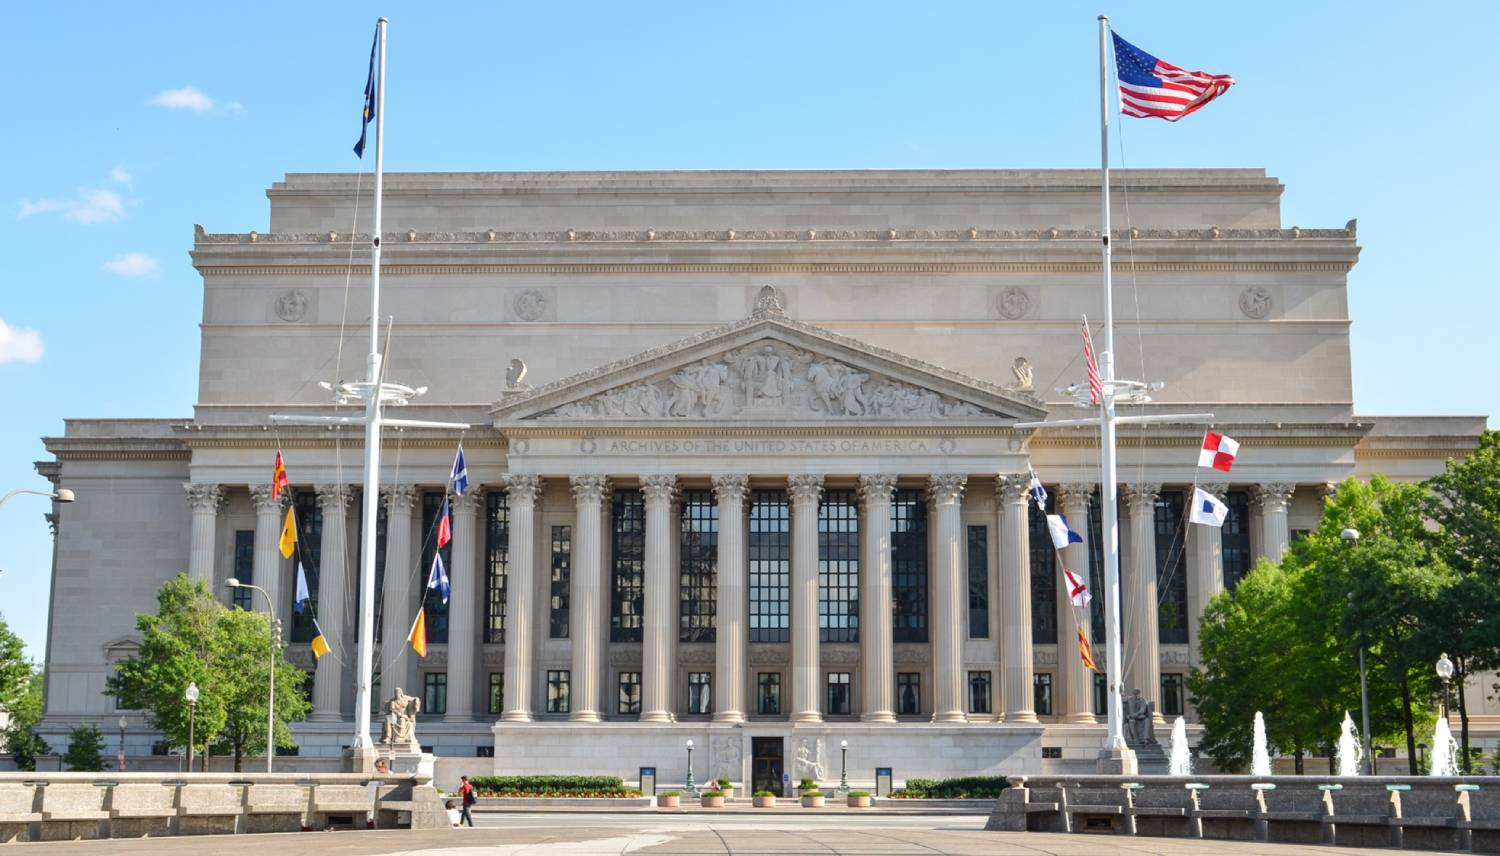 The US National Archives - Things To Do In Washington, D.C.